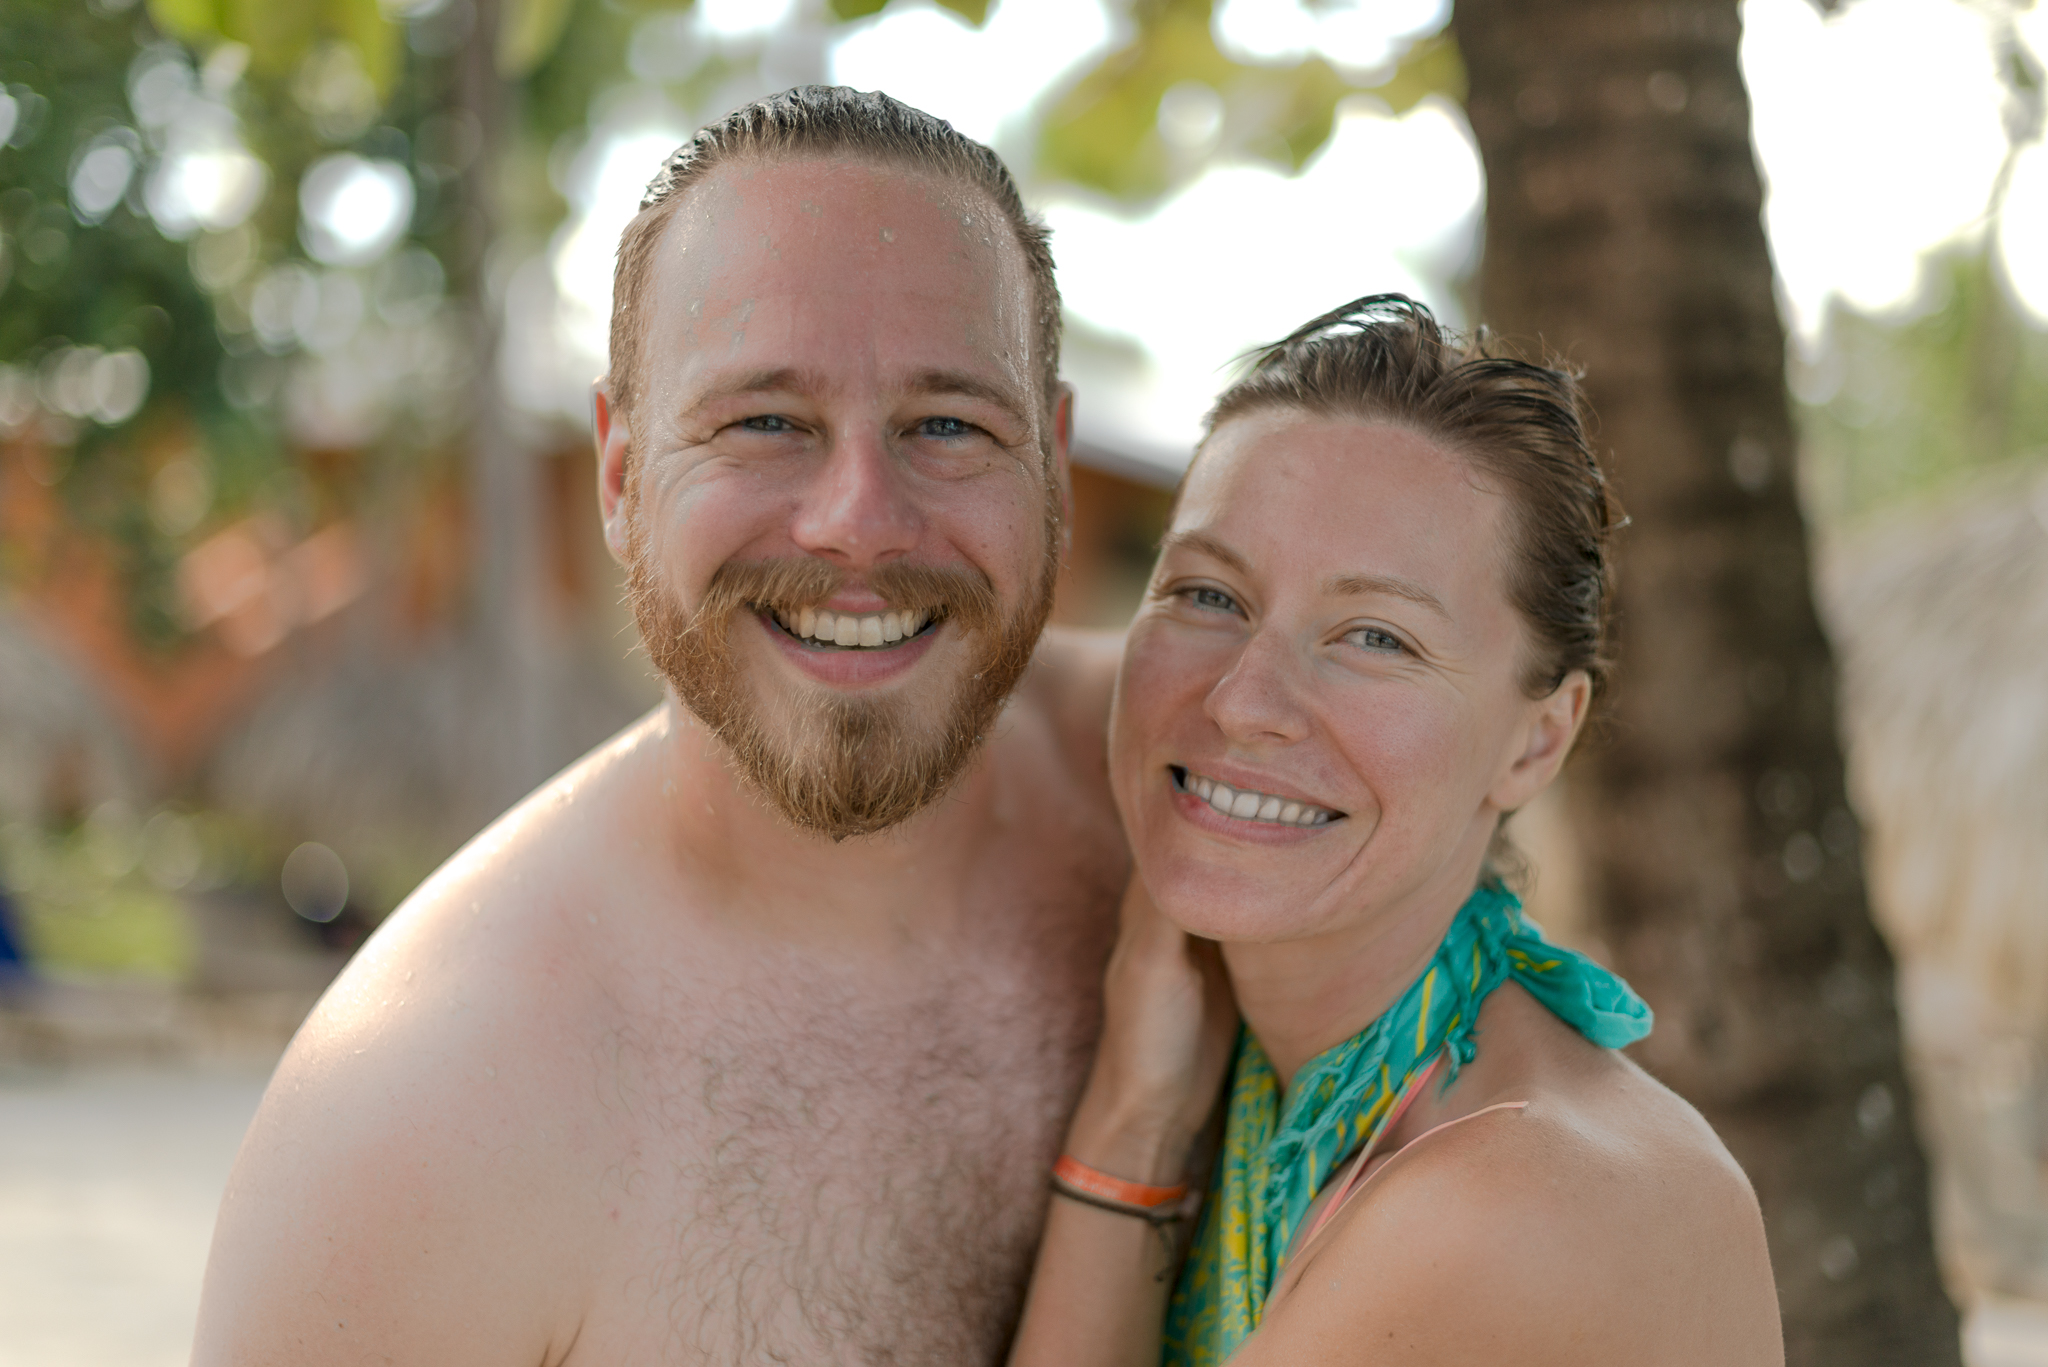 Ben And Kasha At The Pool After Underwater Photos...